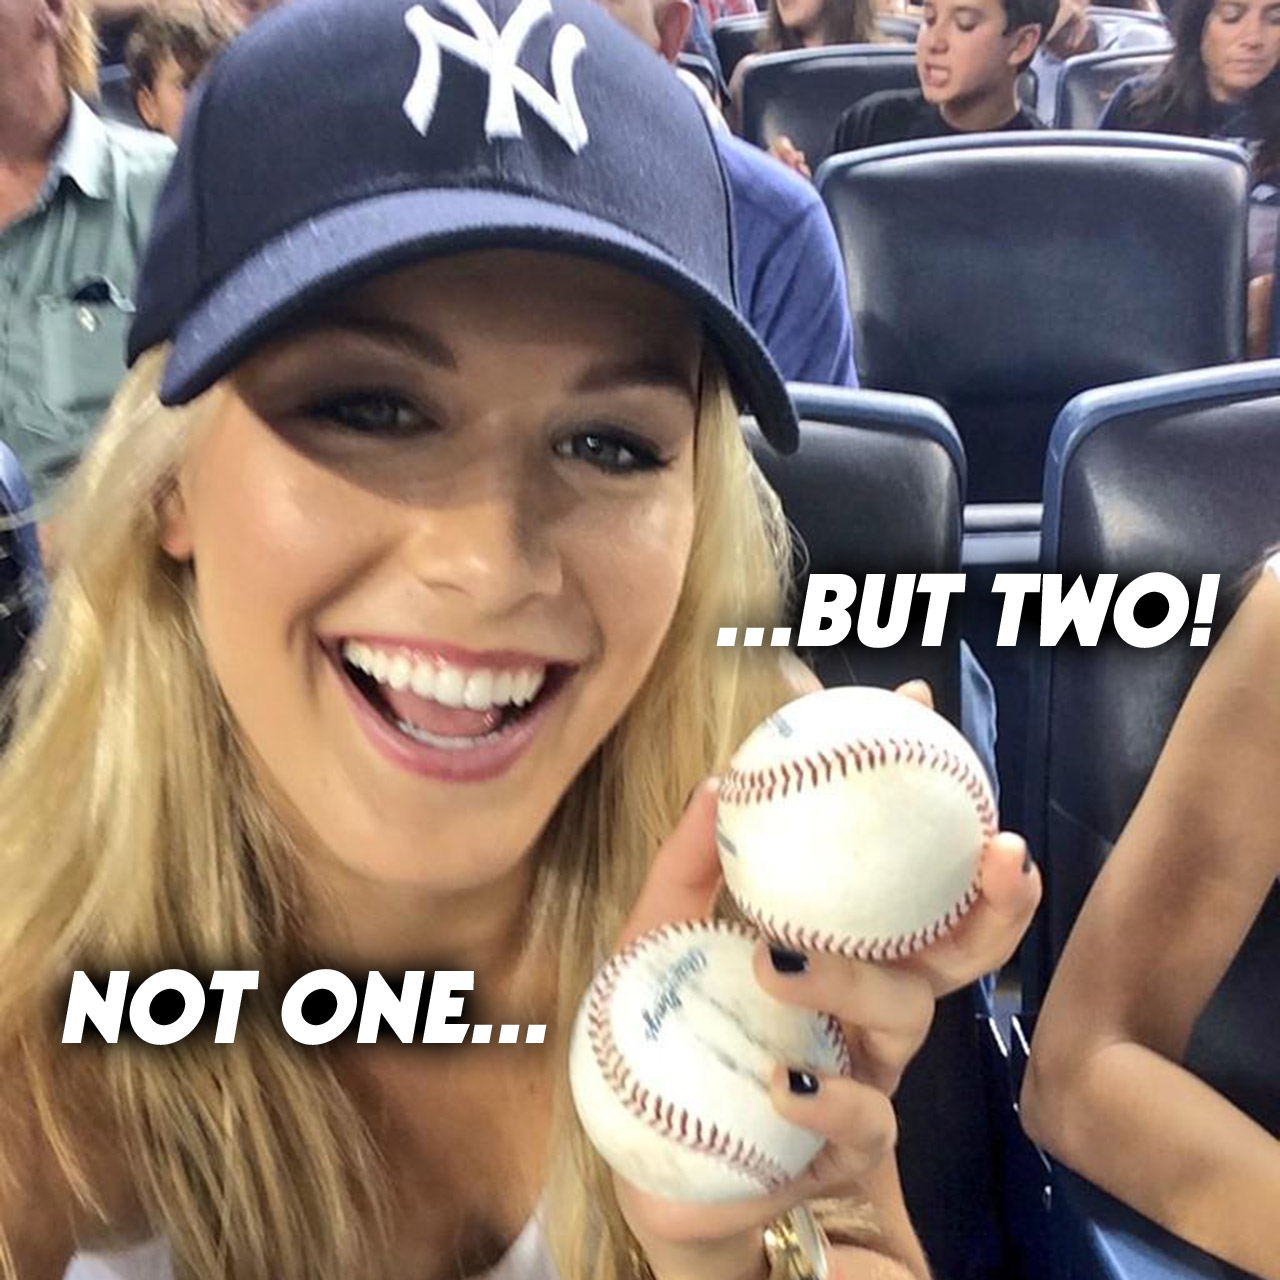 Tennis-pro Eugenie Bouchard catches two foul balls at Yankees game